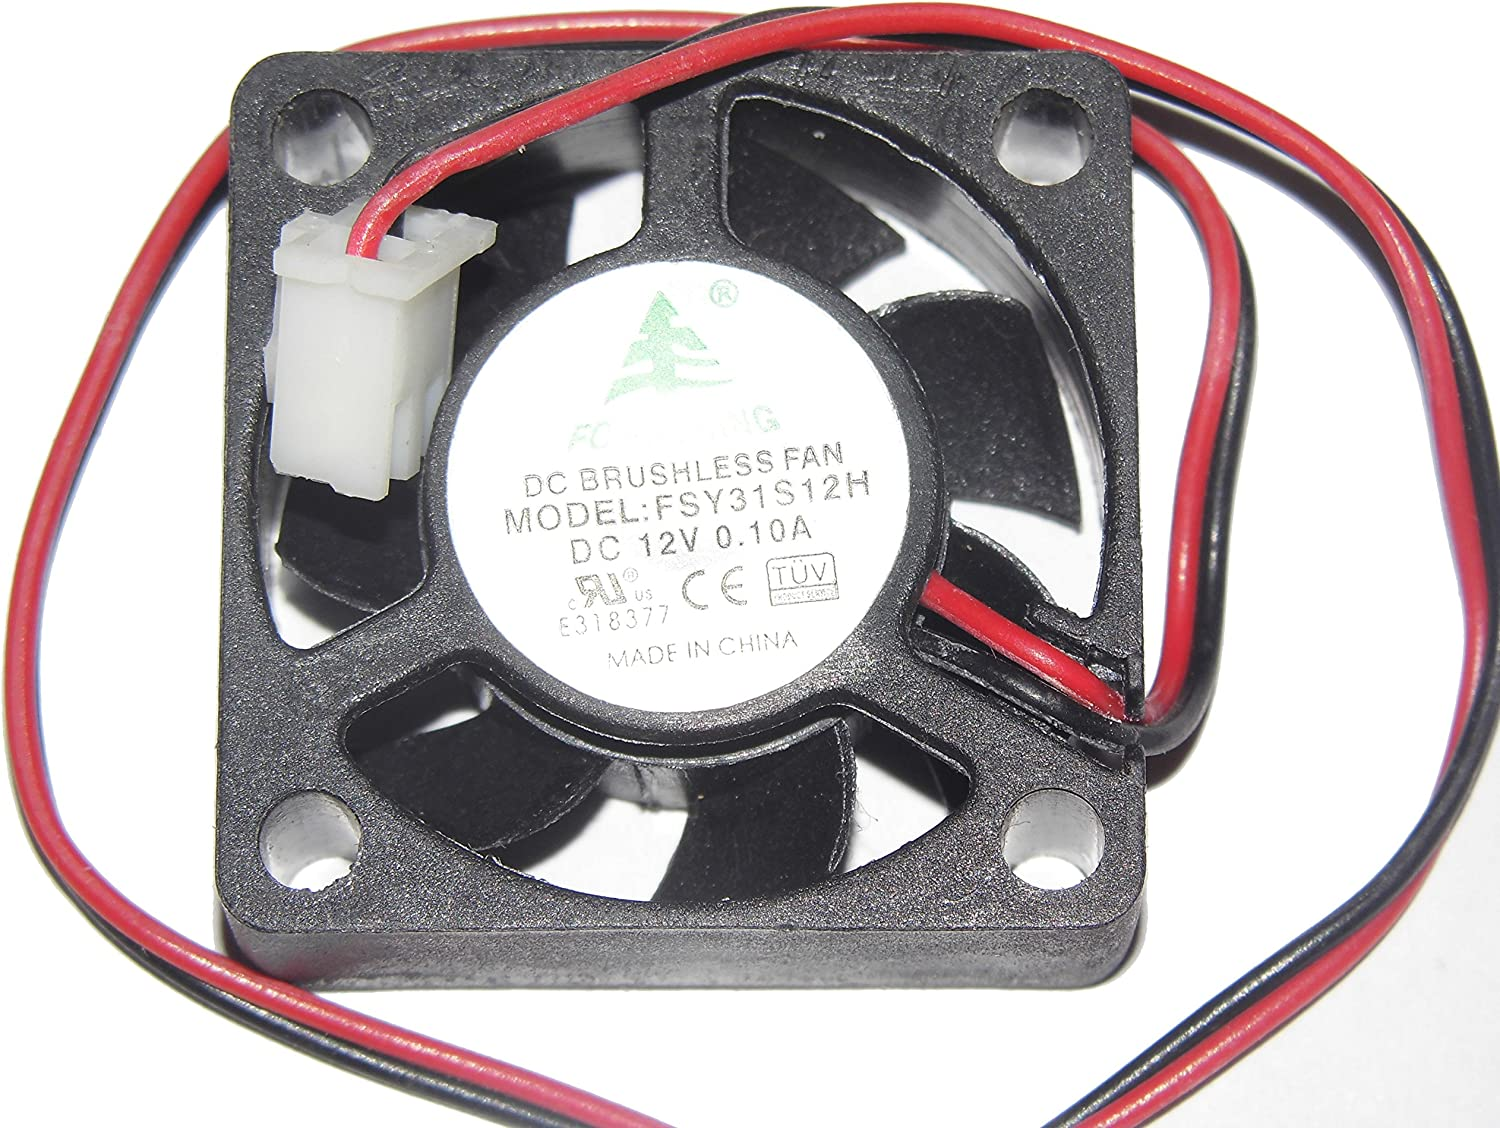 303010MM FSY31S12H 12V 0.1A 2Wire Cooling Fan